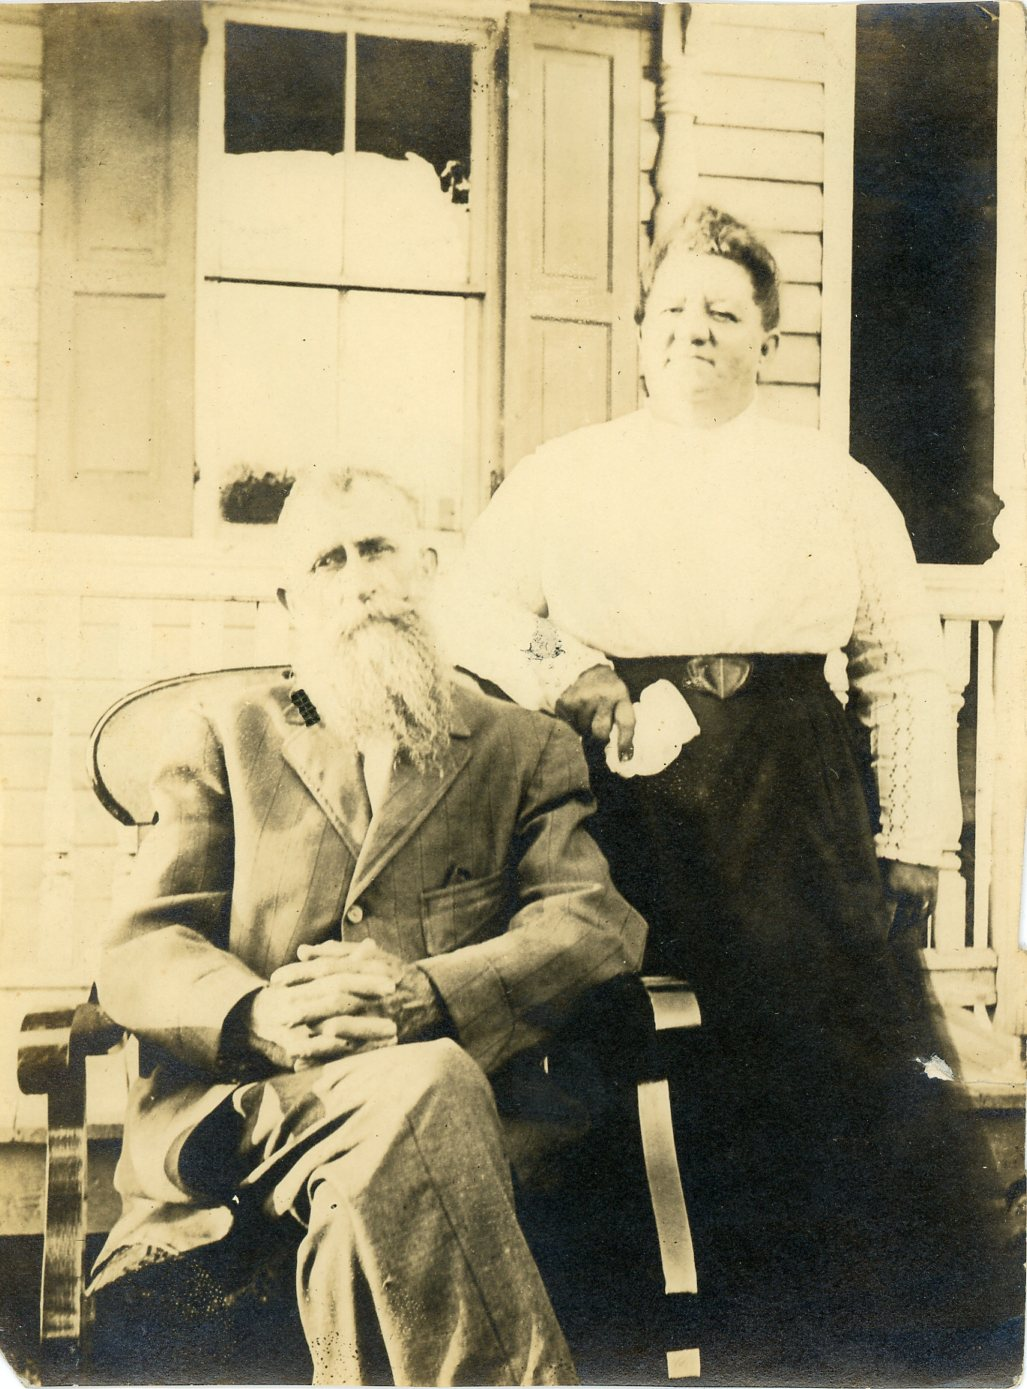 Henry Hamilton Wiggins and Kathryn Louisa Aukamp Wiggins